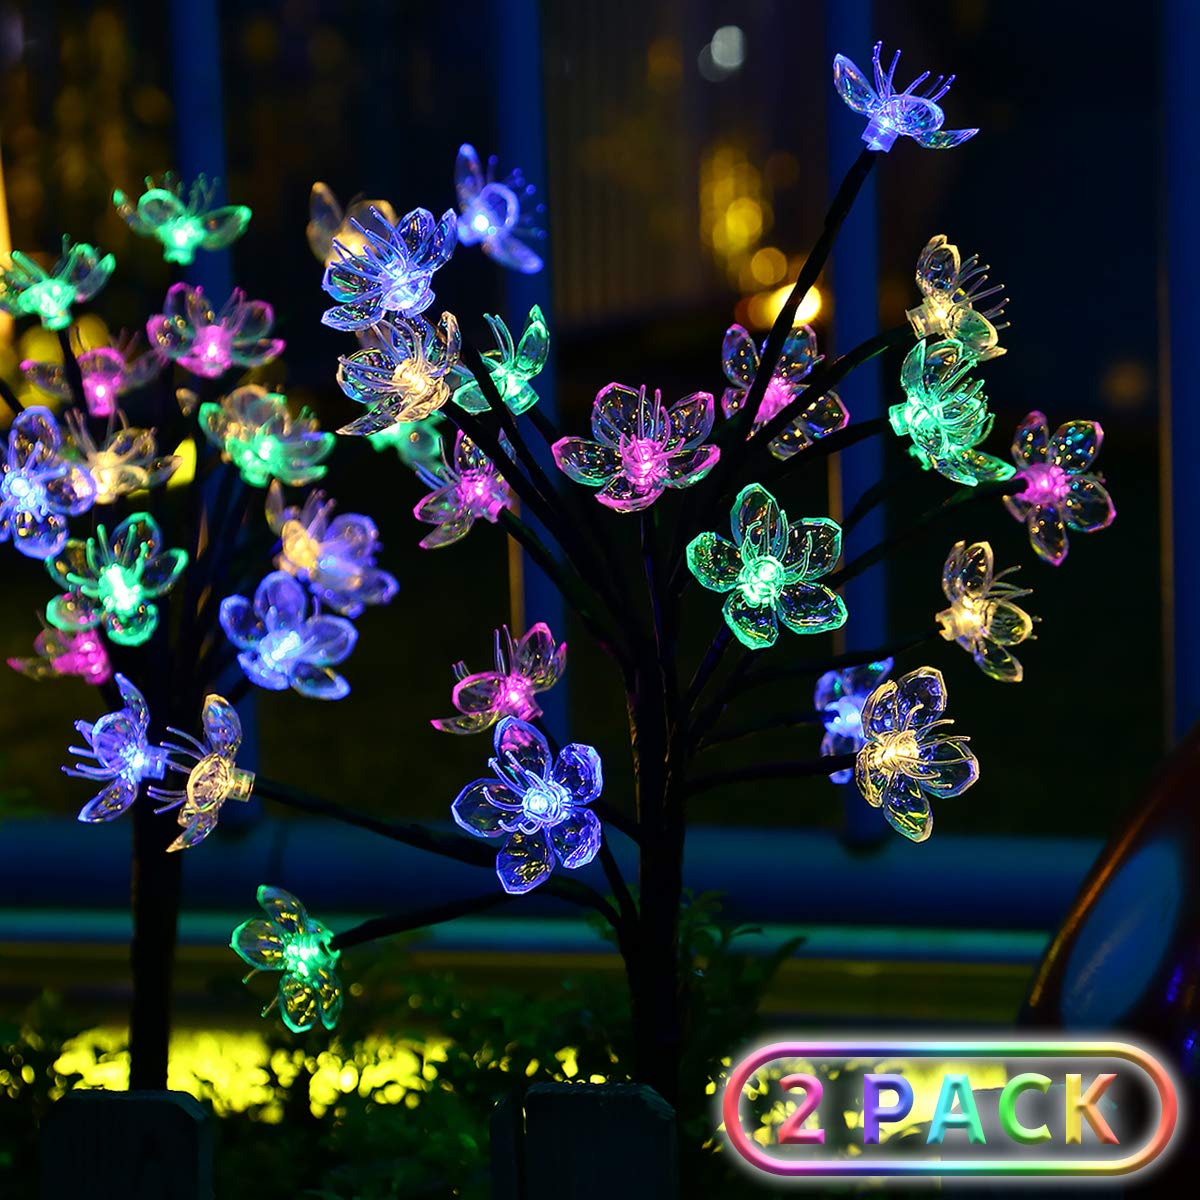 Solar Garden Lights Upgraded Outdoor Yard Decorations - Color Changing Bigger Artificial Flower Decorative , IPX7 Waterproof Wider Solar Panel Quality for Patio Yard Party Wedding Decoration,2 Pack by ANKEWAY